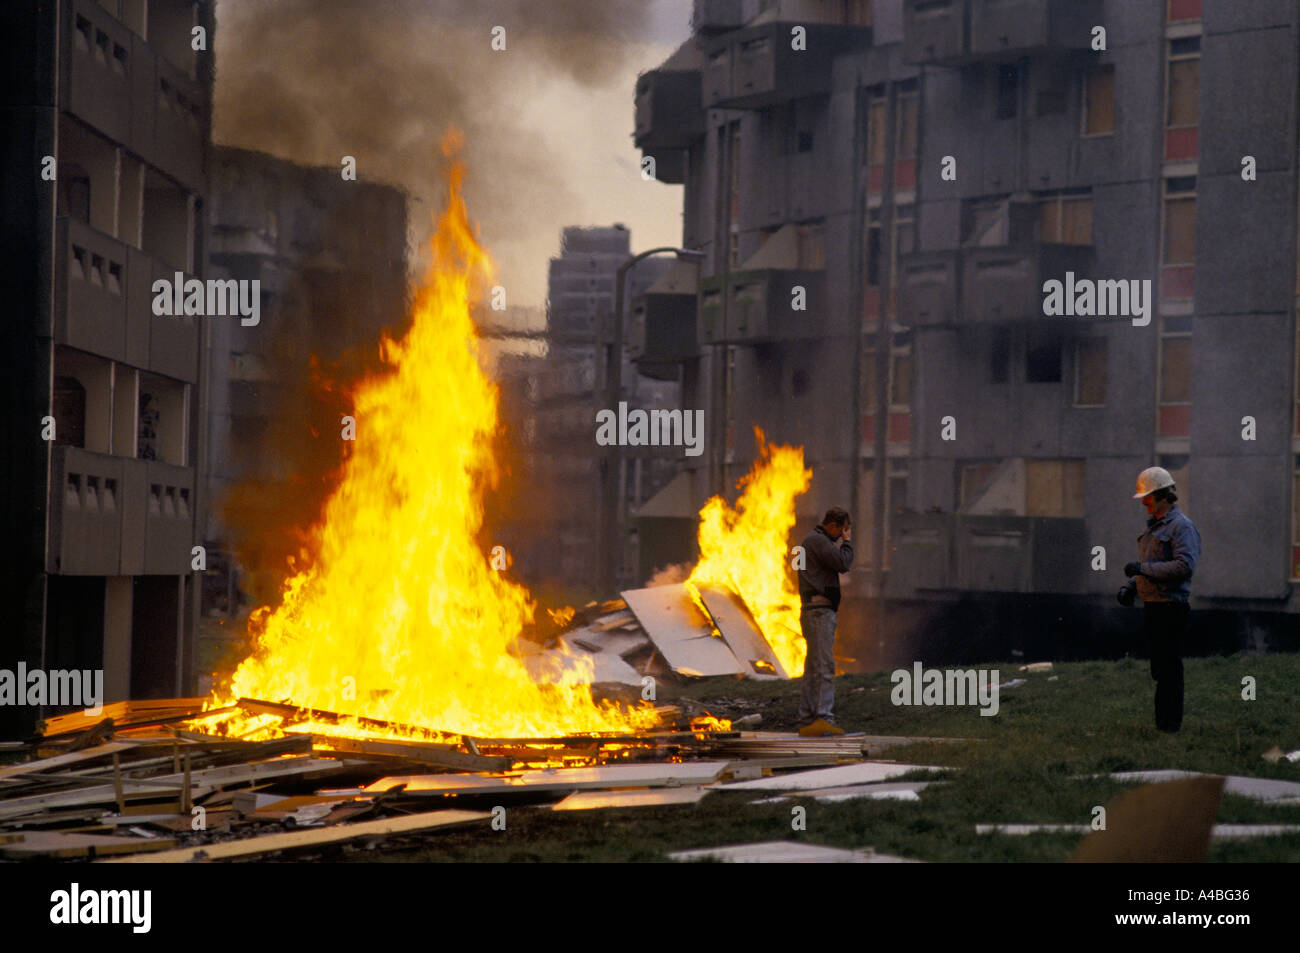 SCRAP PANELS BURNING IN HIGH FLAMES ON GROUND OF HUME CRESCENT. WORKERS OF DEMOLITION IN DESPAIR. HIGH RISE ESTATE. - Stock Image